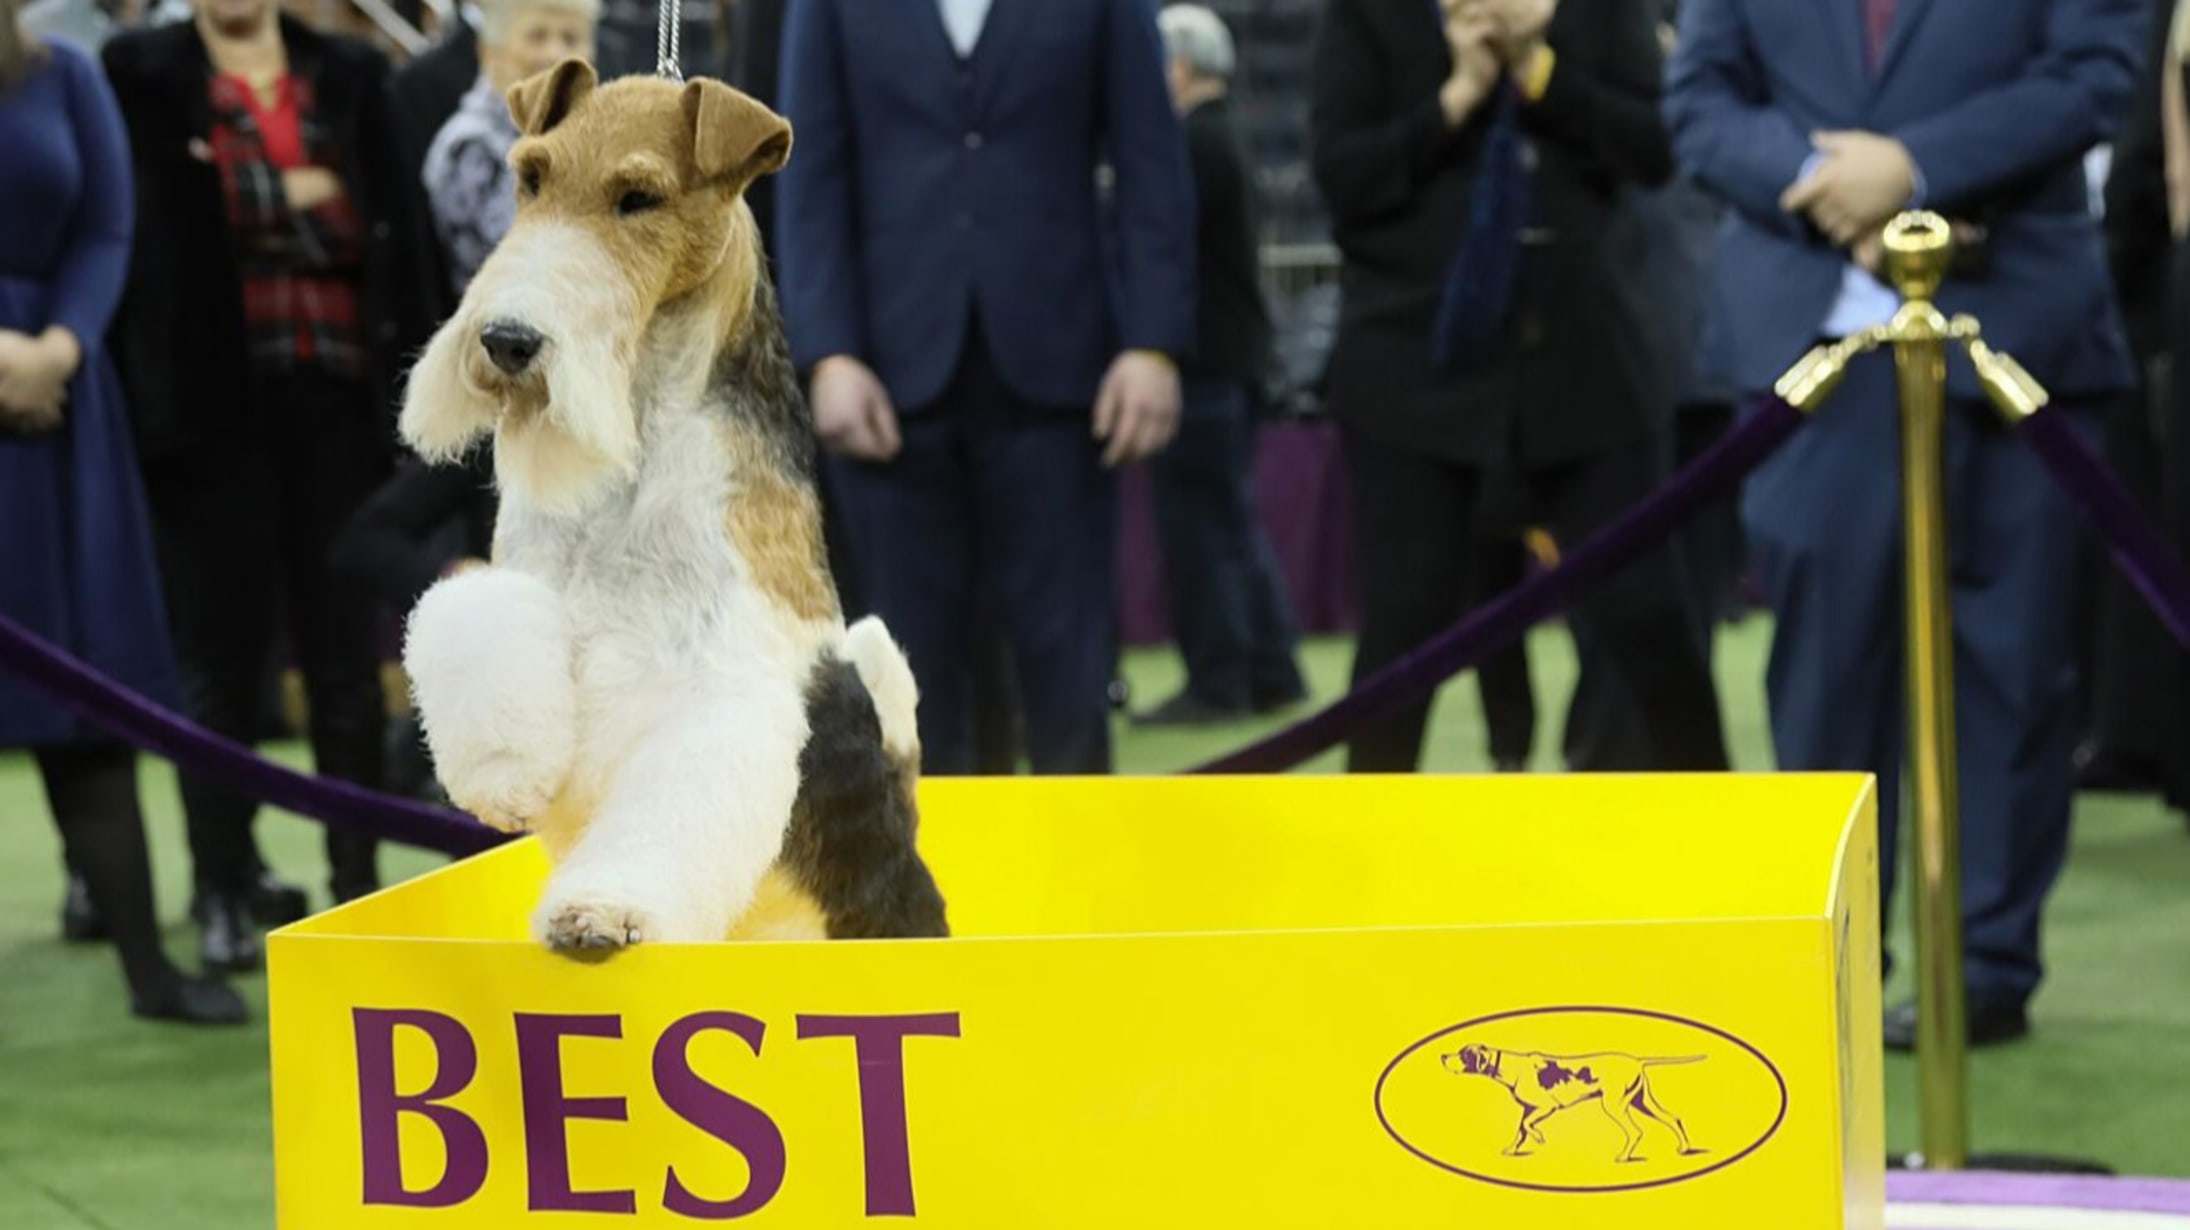 Westminster Dog Show 2020 Dates.2020 Wkc Dog Show Updates